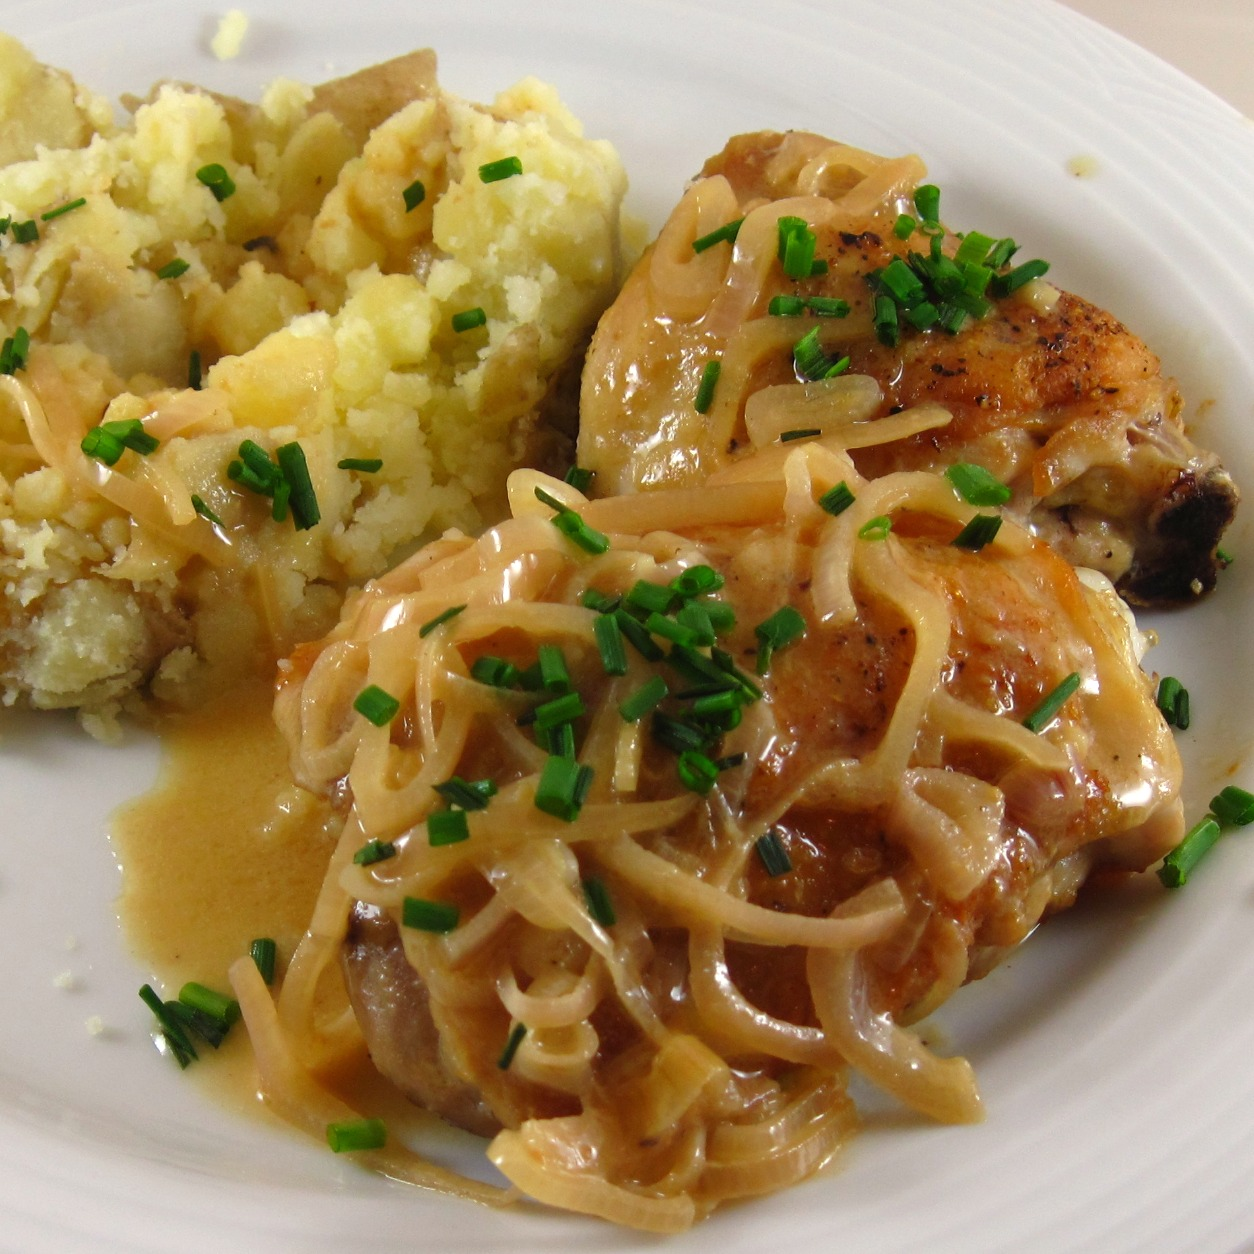 Roasted Chicken with Dijon Sauce | In the kitchen with Kath